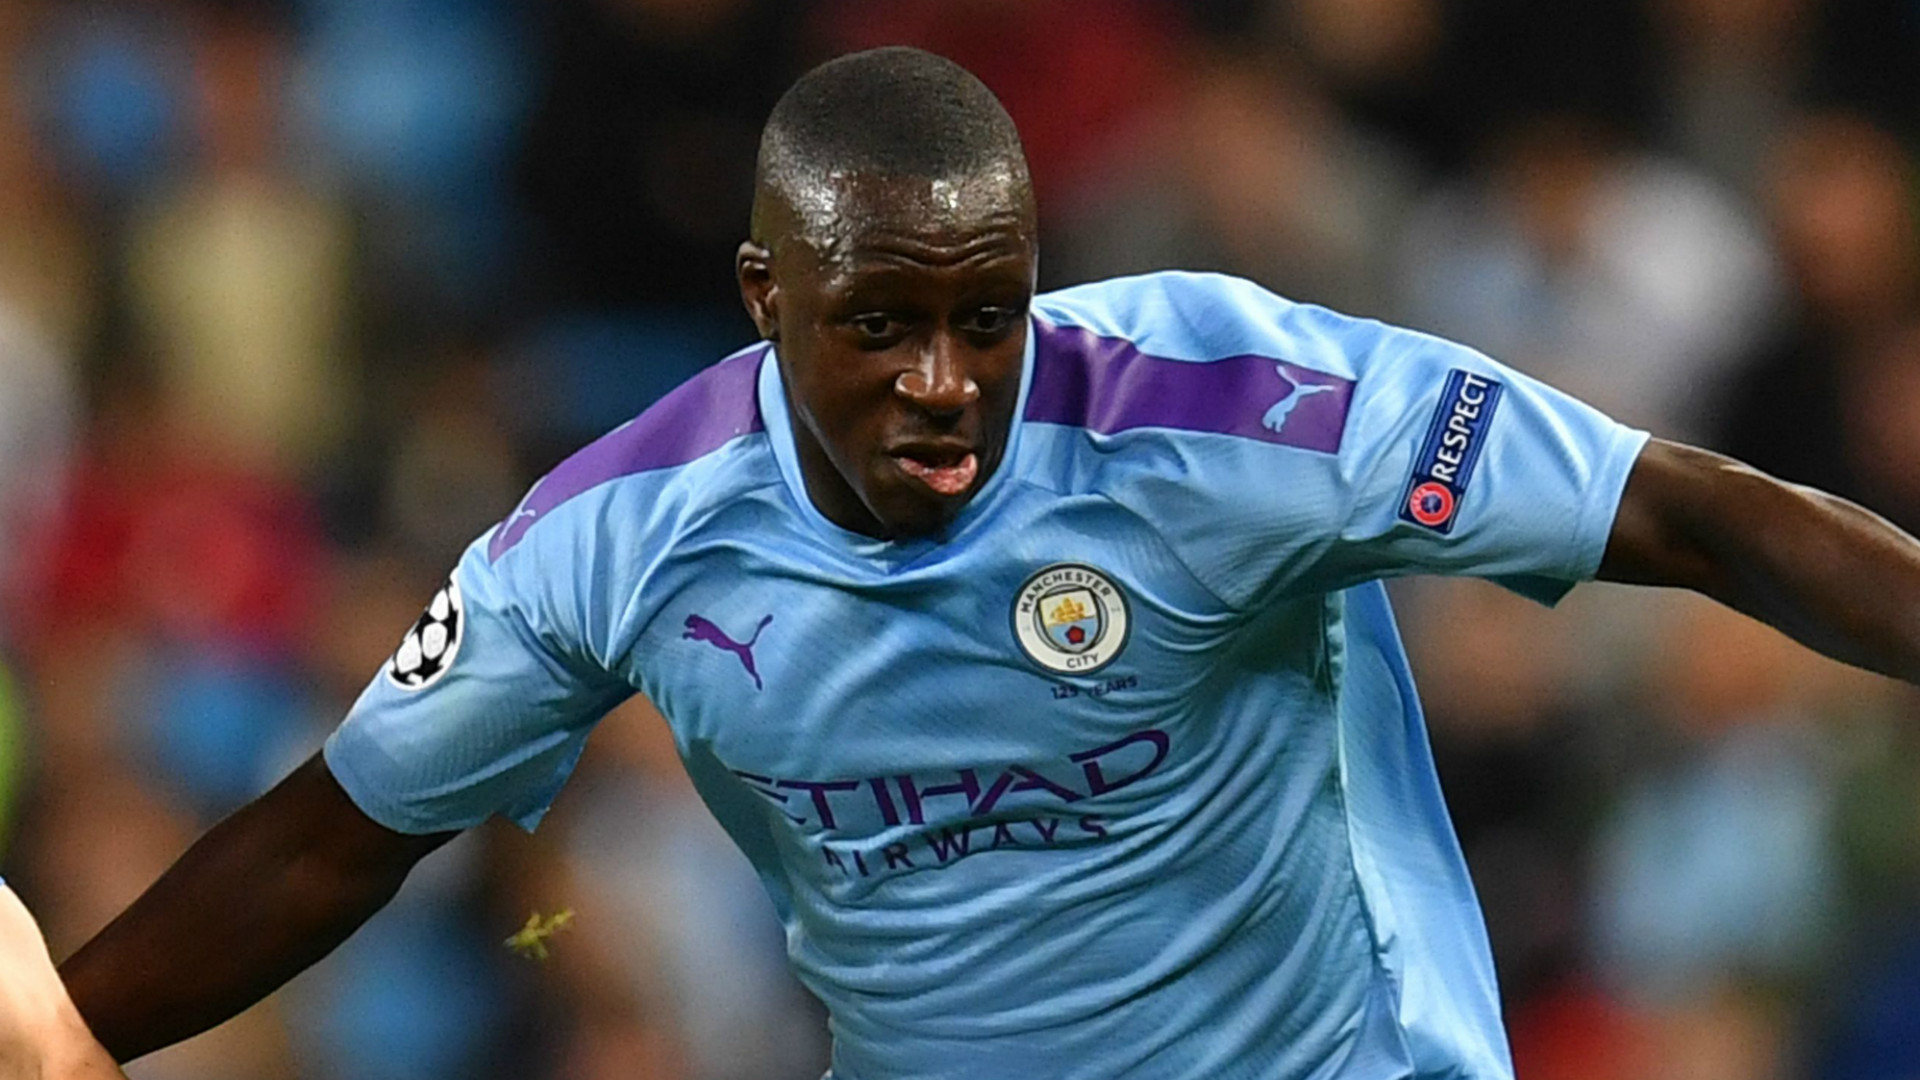 Man City ace Mendy recalled to France squad for upcoming Euro 2020 qualifiers